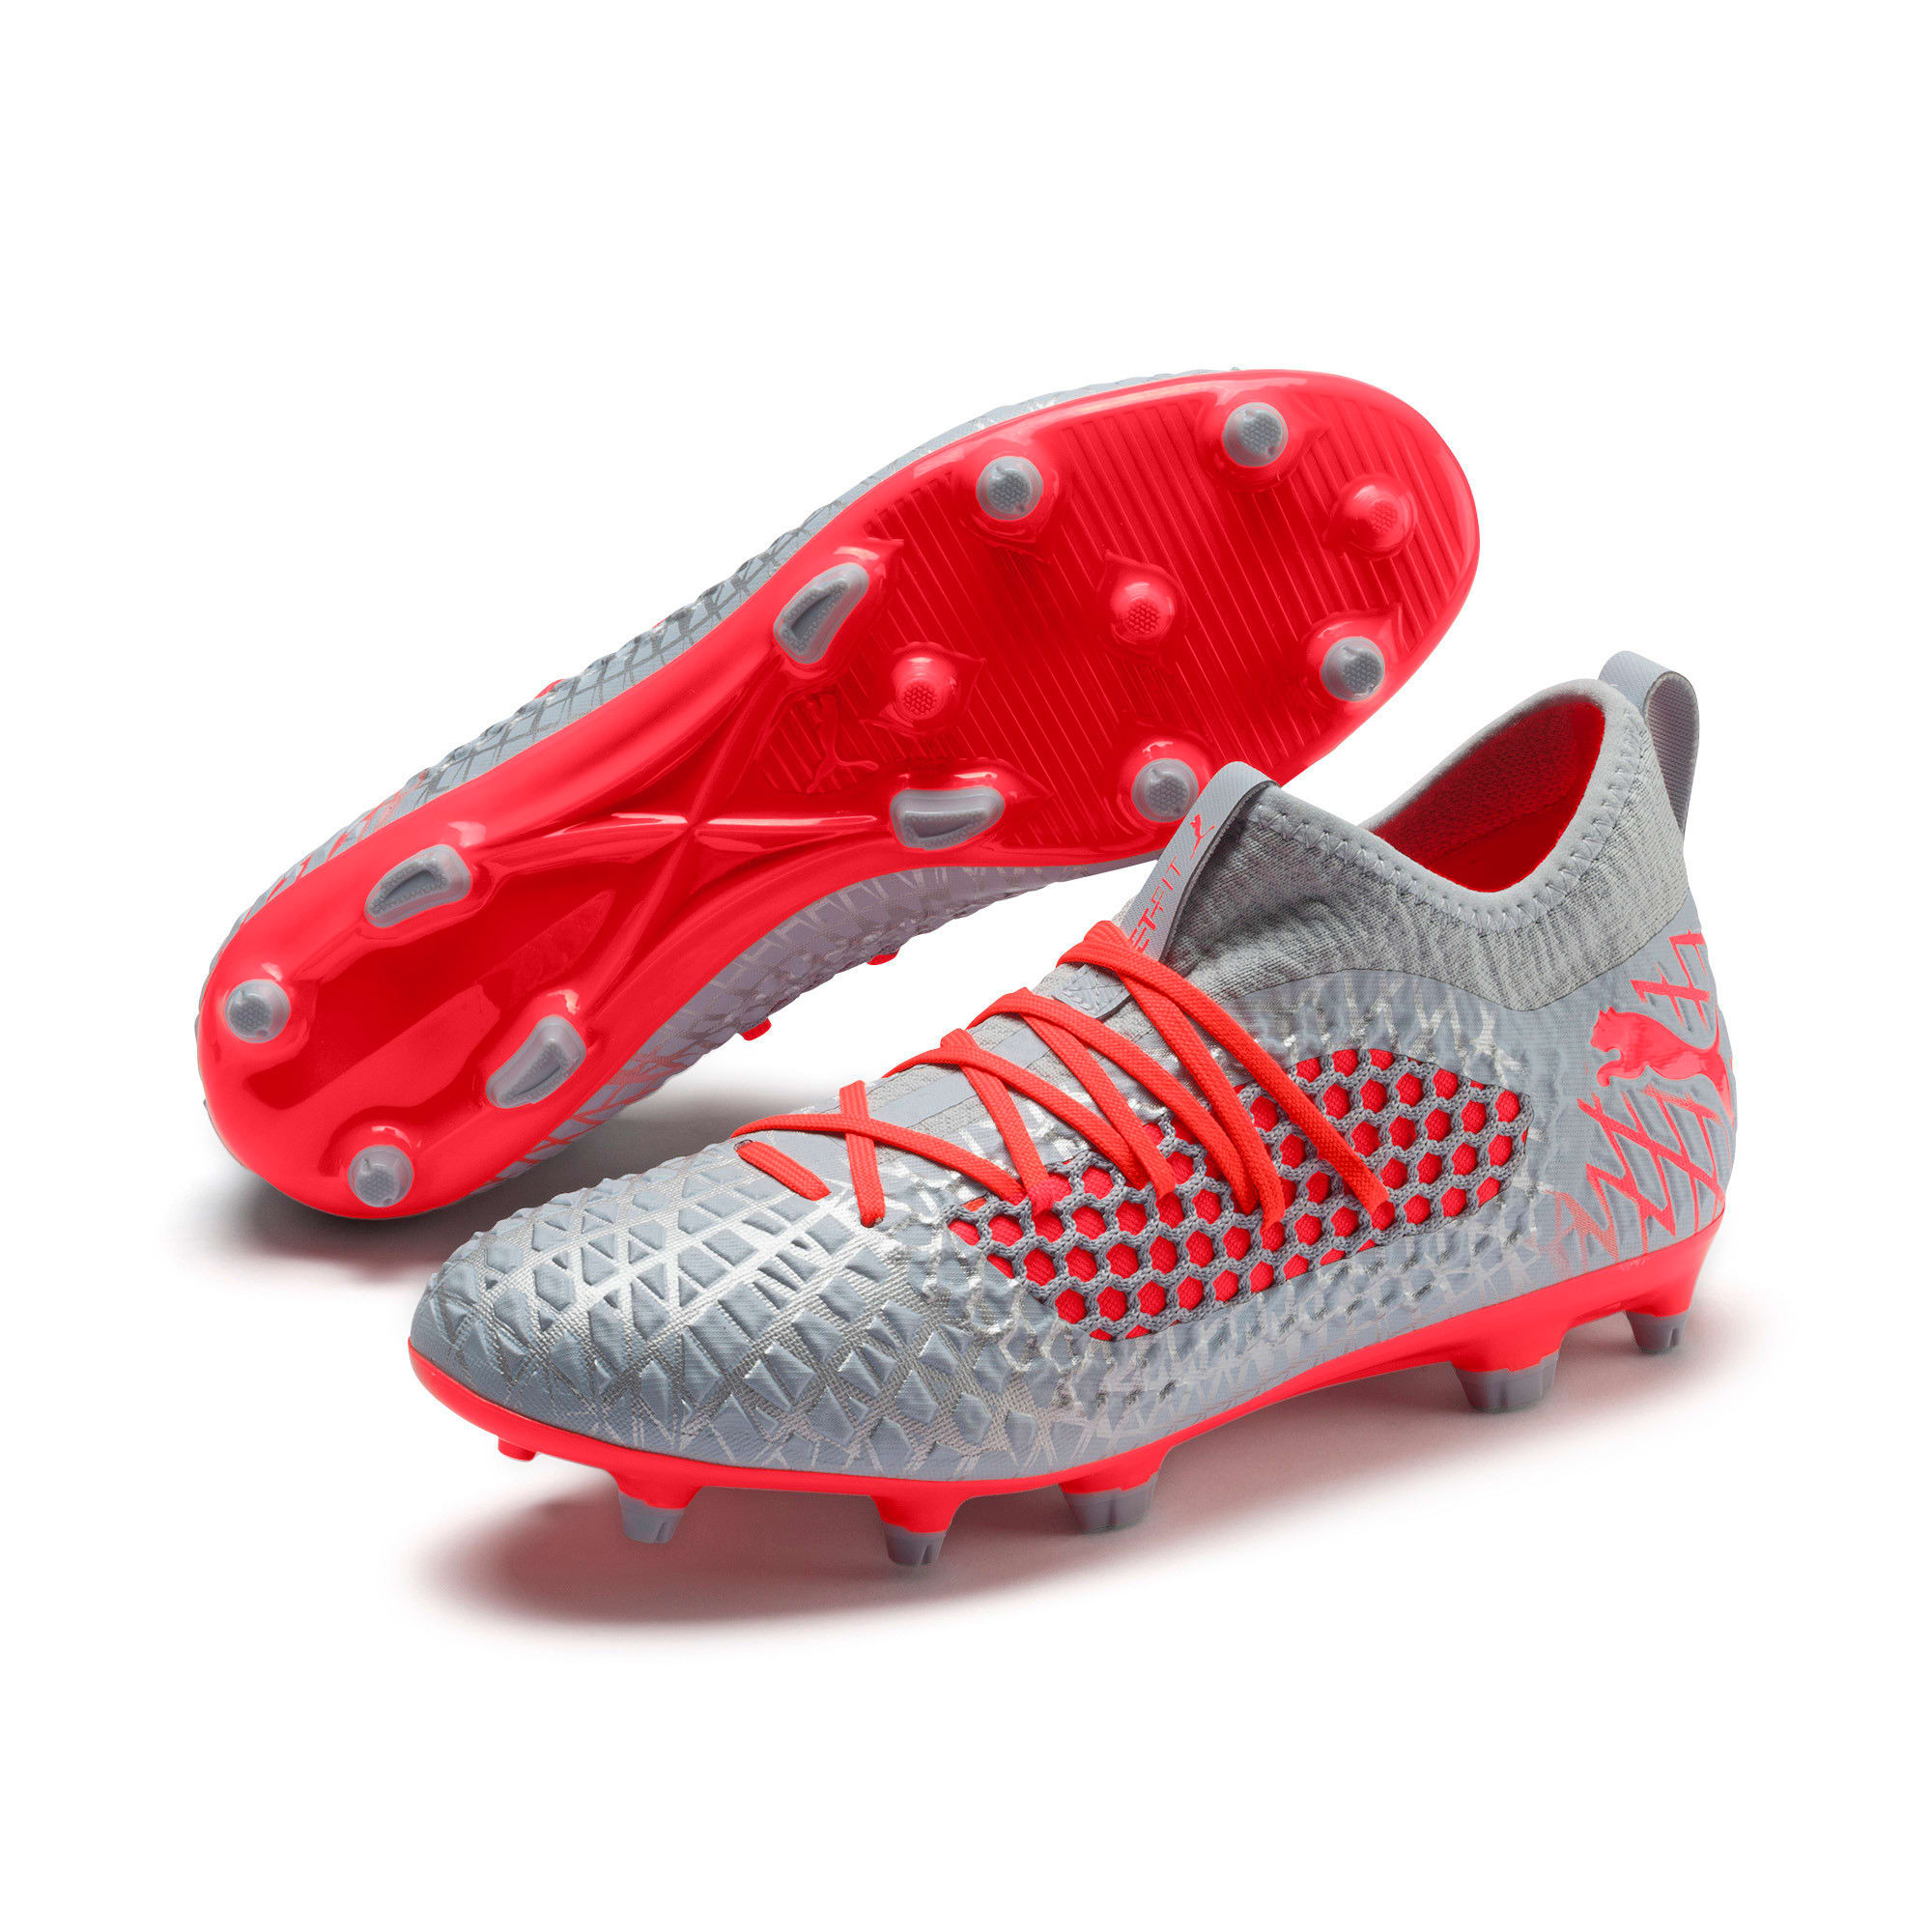 Thumbnail 3 of FUTURE 4.3 NETFIT FG/AG Herren Fußballschuhe, Glacial Blue-Nrgy Red, medium